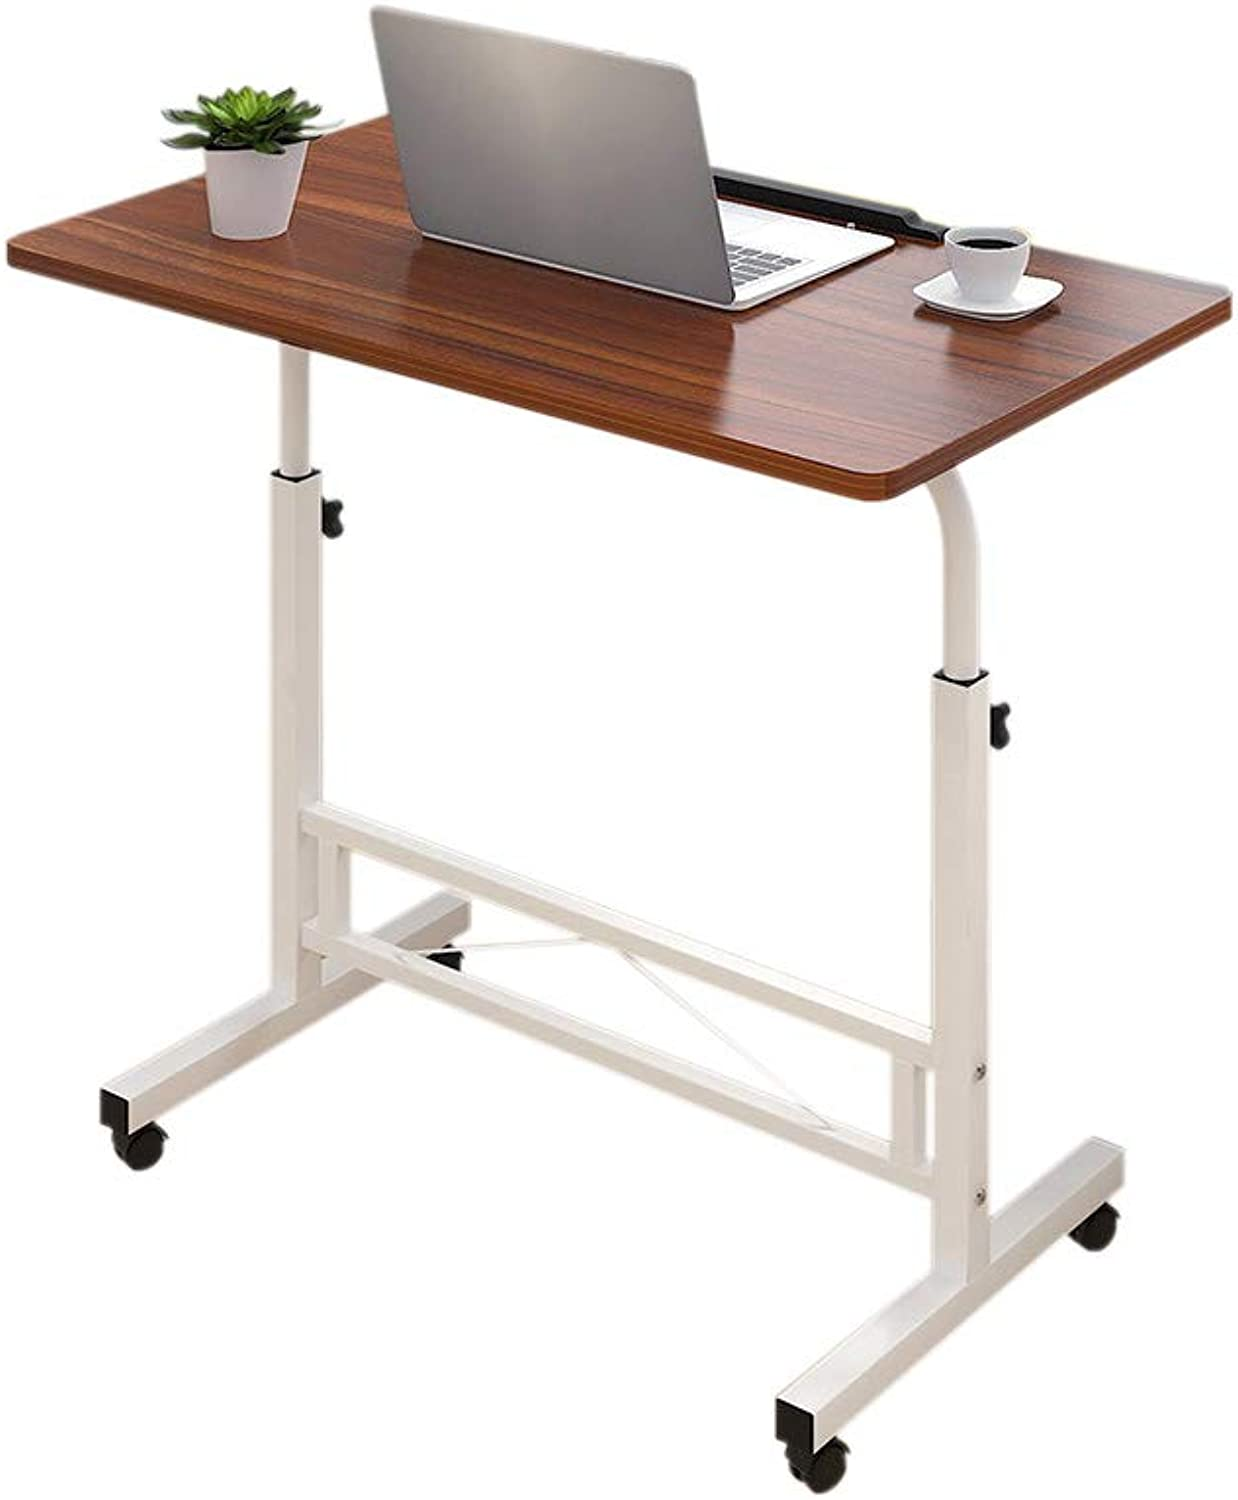 Bedside it Can Move Laptop Table Height Adjustable Computer Desk Sofa Side TK (color   A)